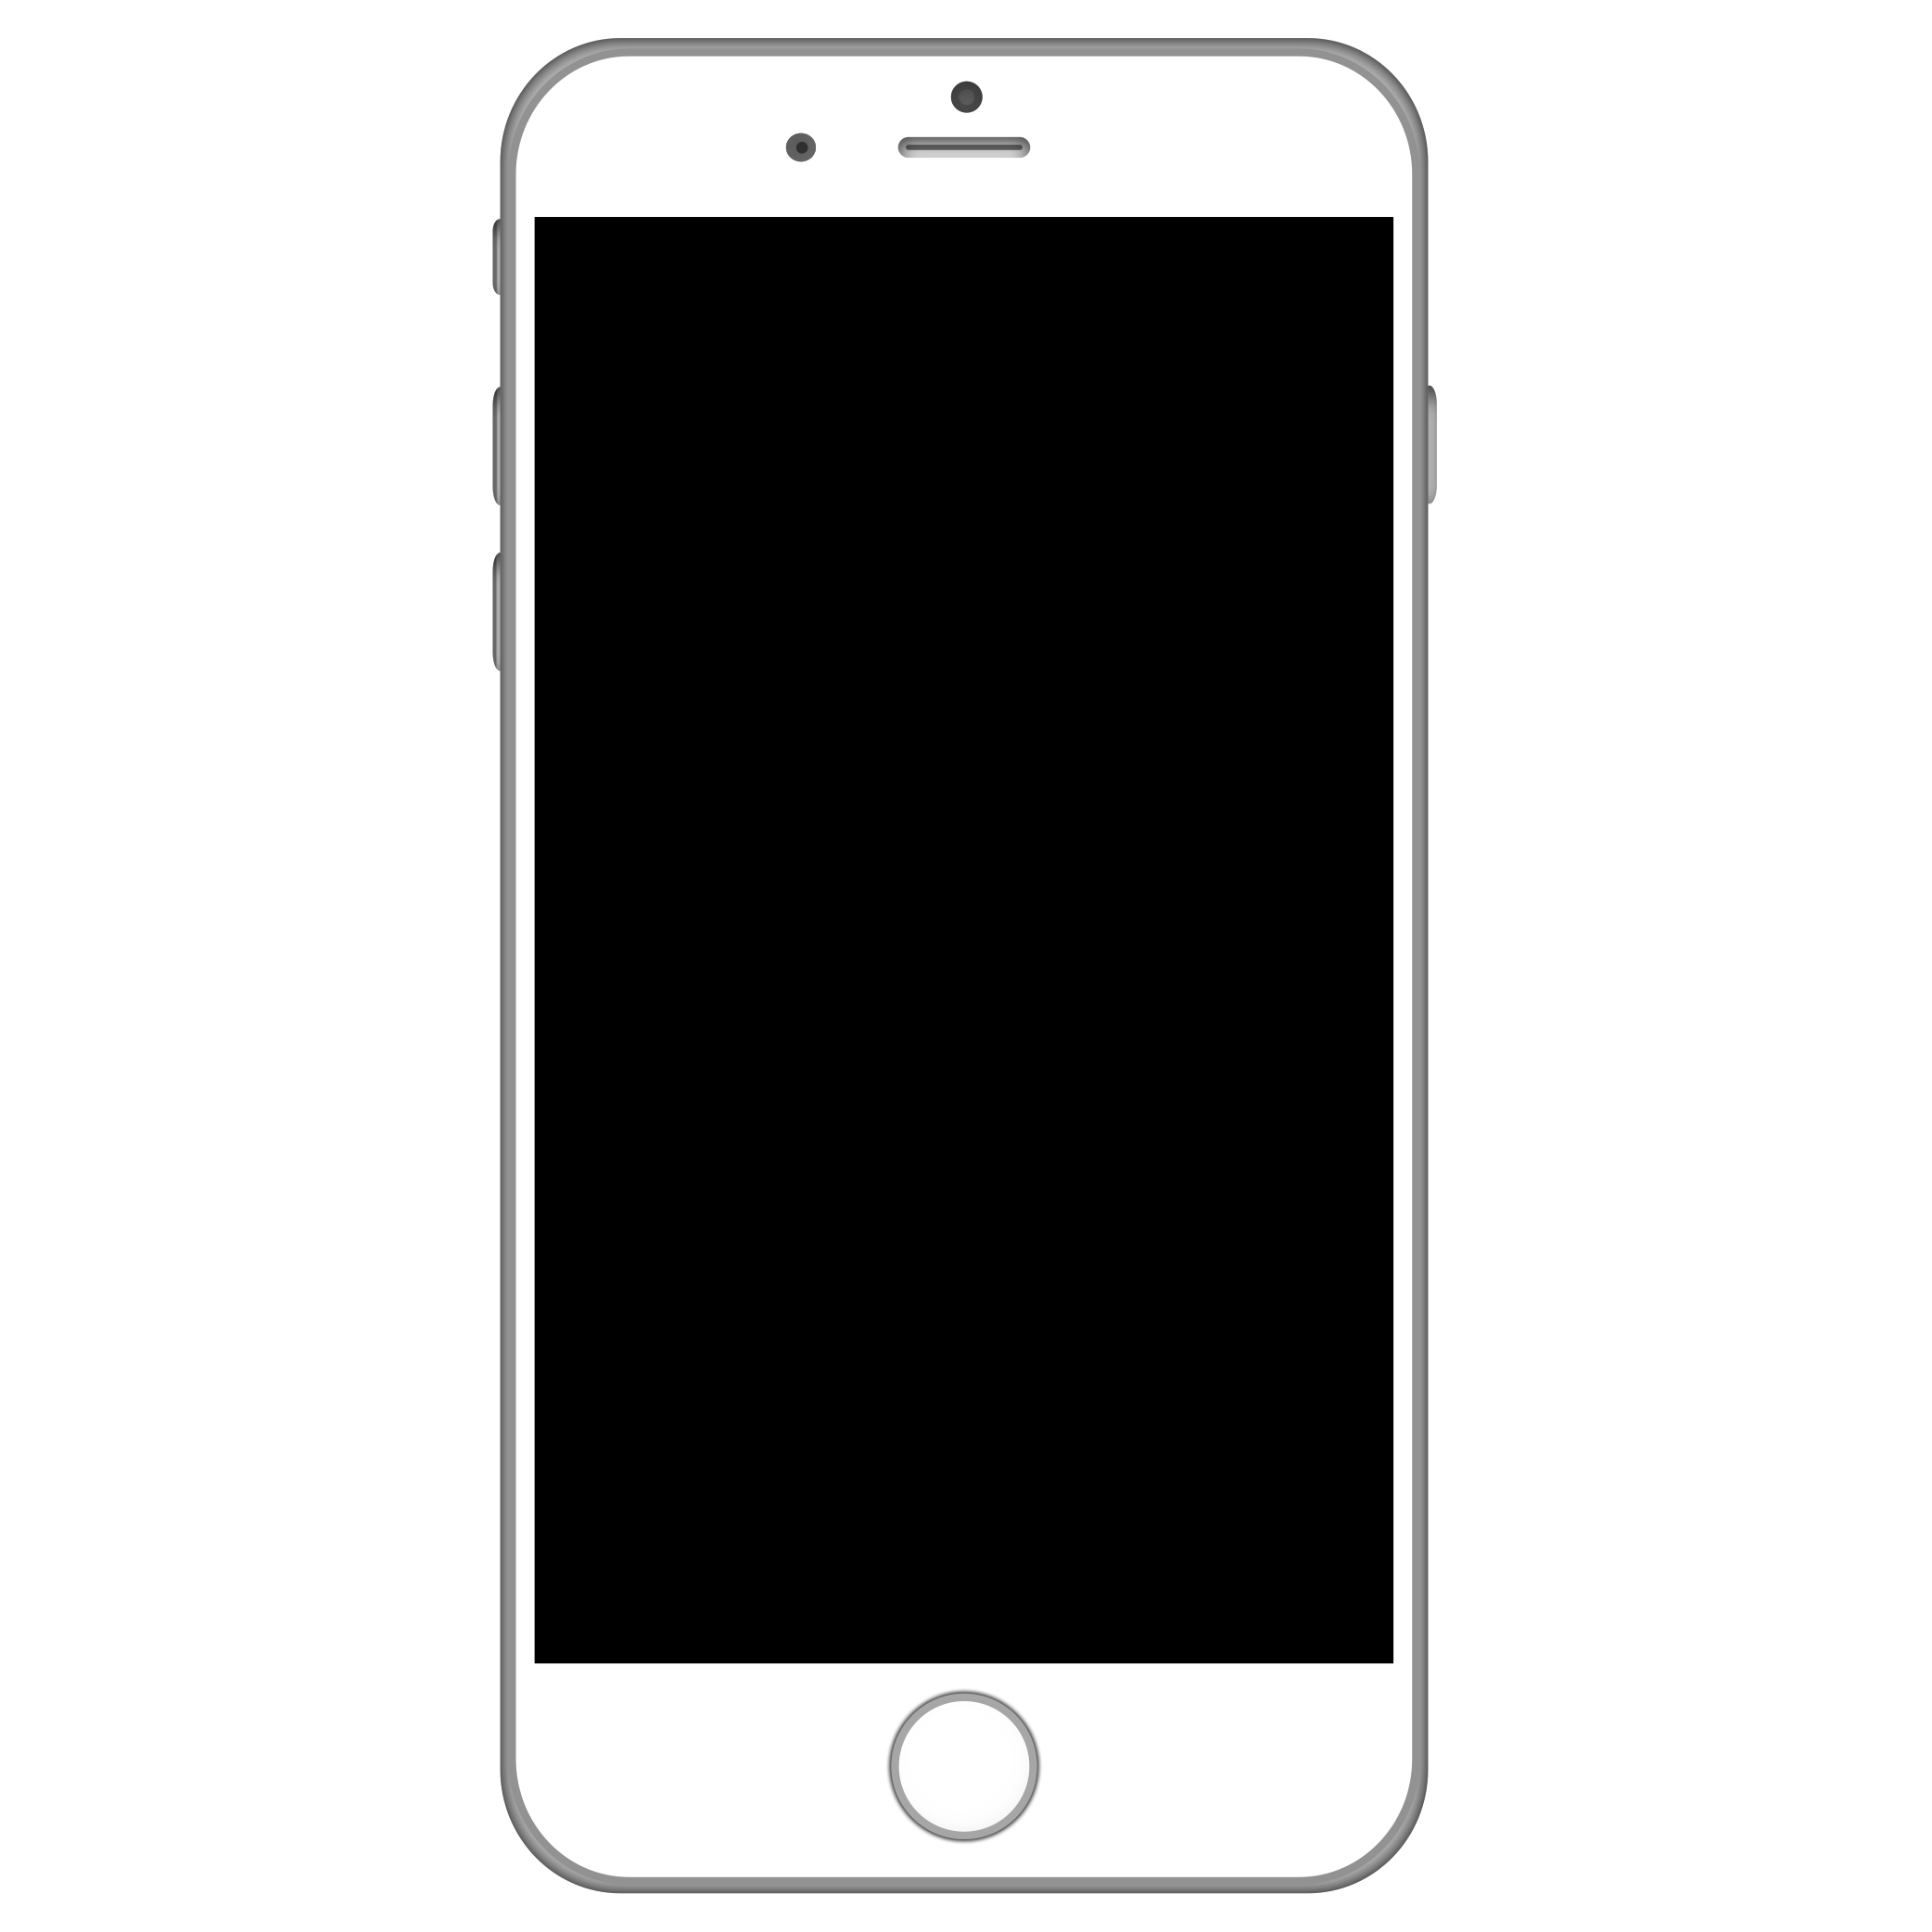 Iphone 6s Png (86+ images in Collection) Page 1.